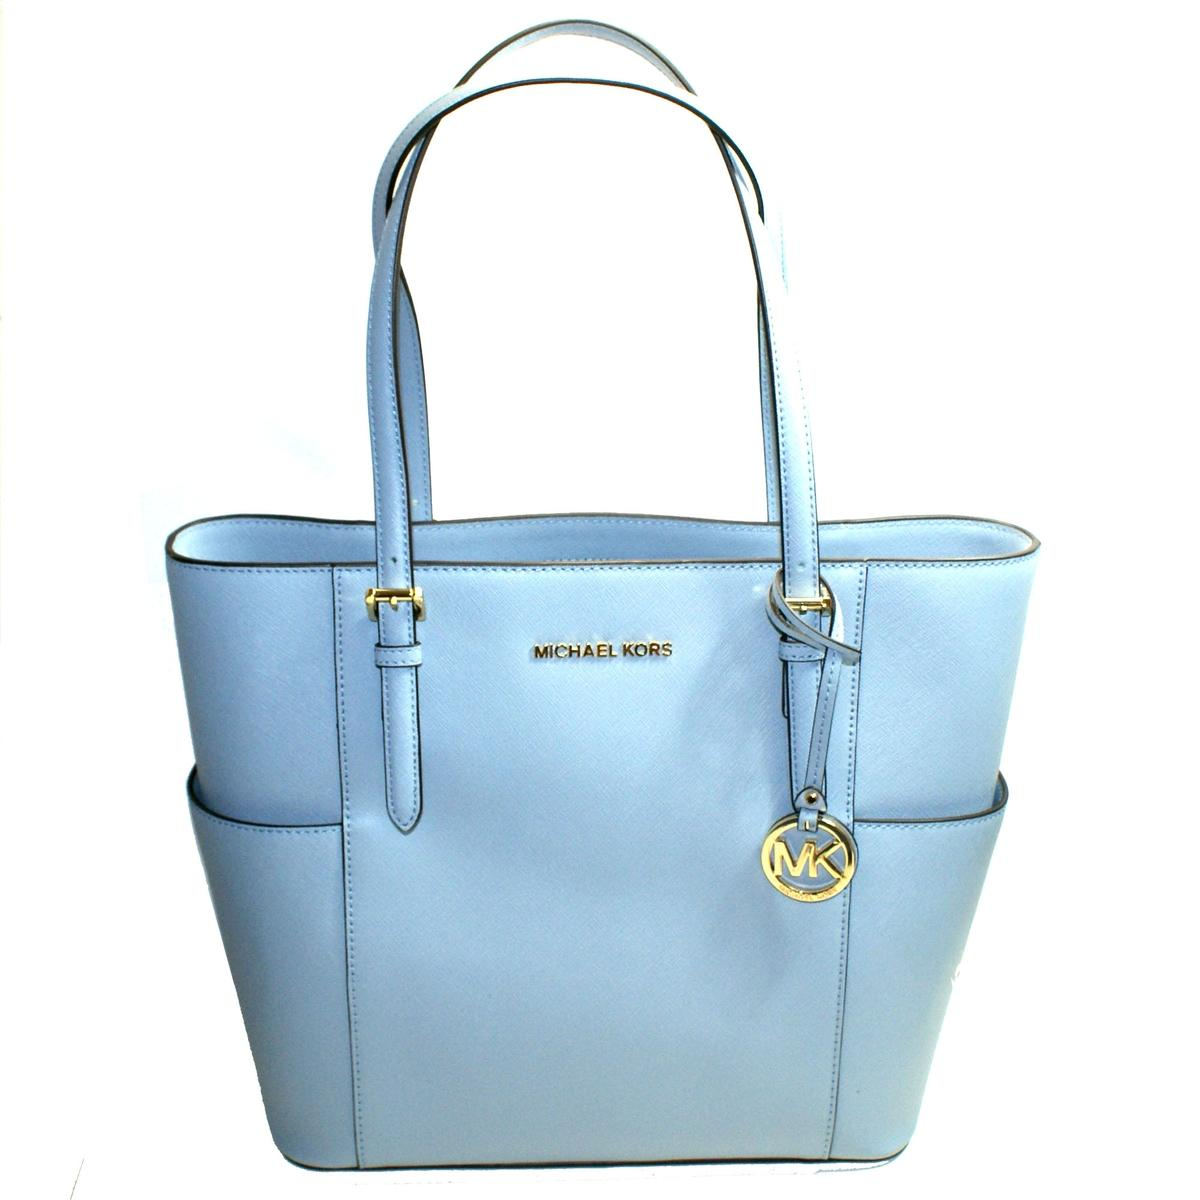 80a57fdc2aedeb Home · Michael Kors · Jet Set Travel Leather Large Tote Bag Pale blue.  CLICK THUMBNAIL TO ZOOM. Found ...